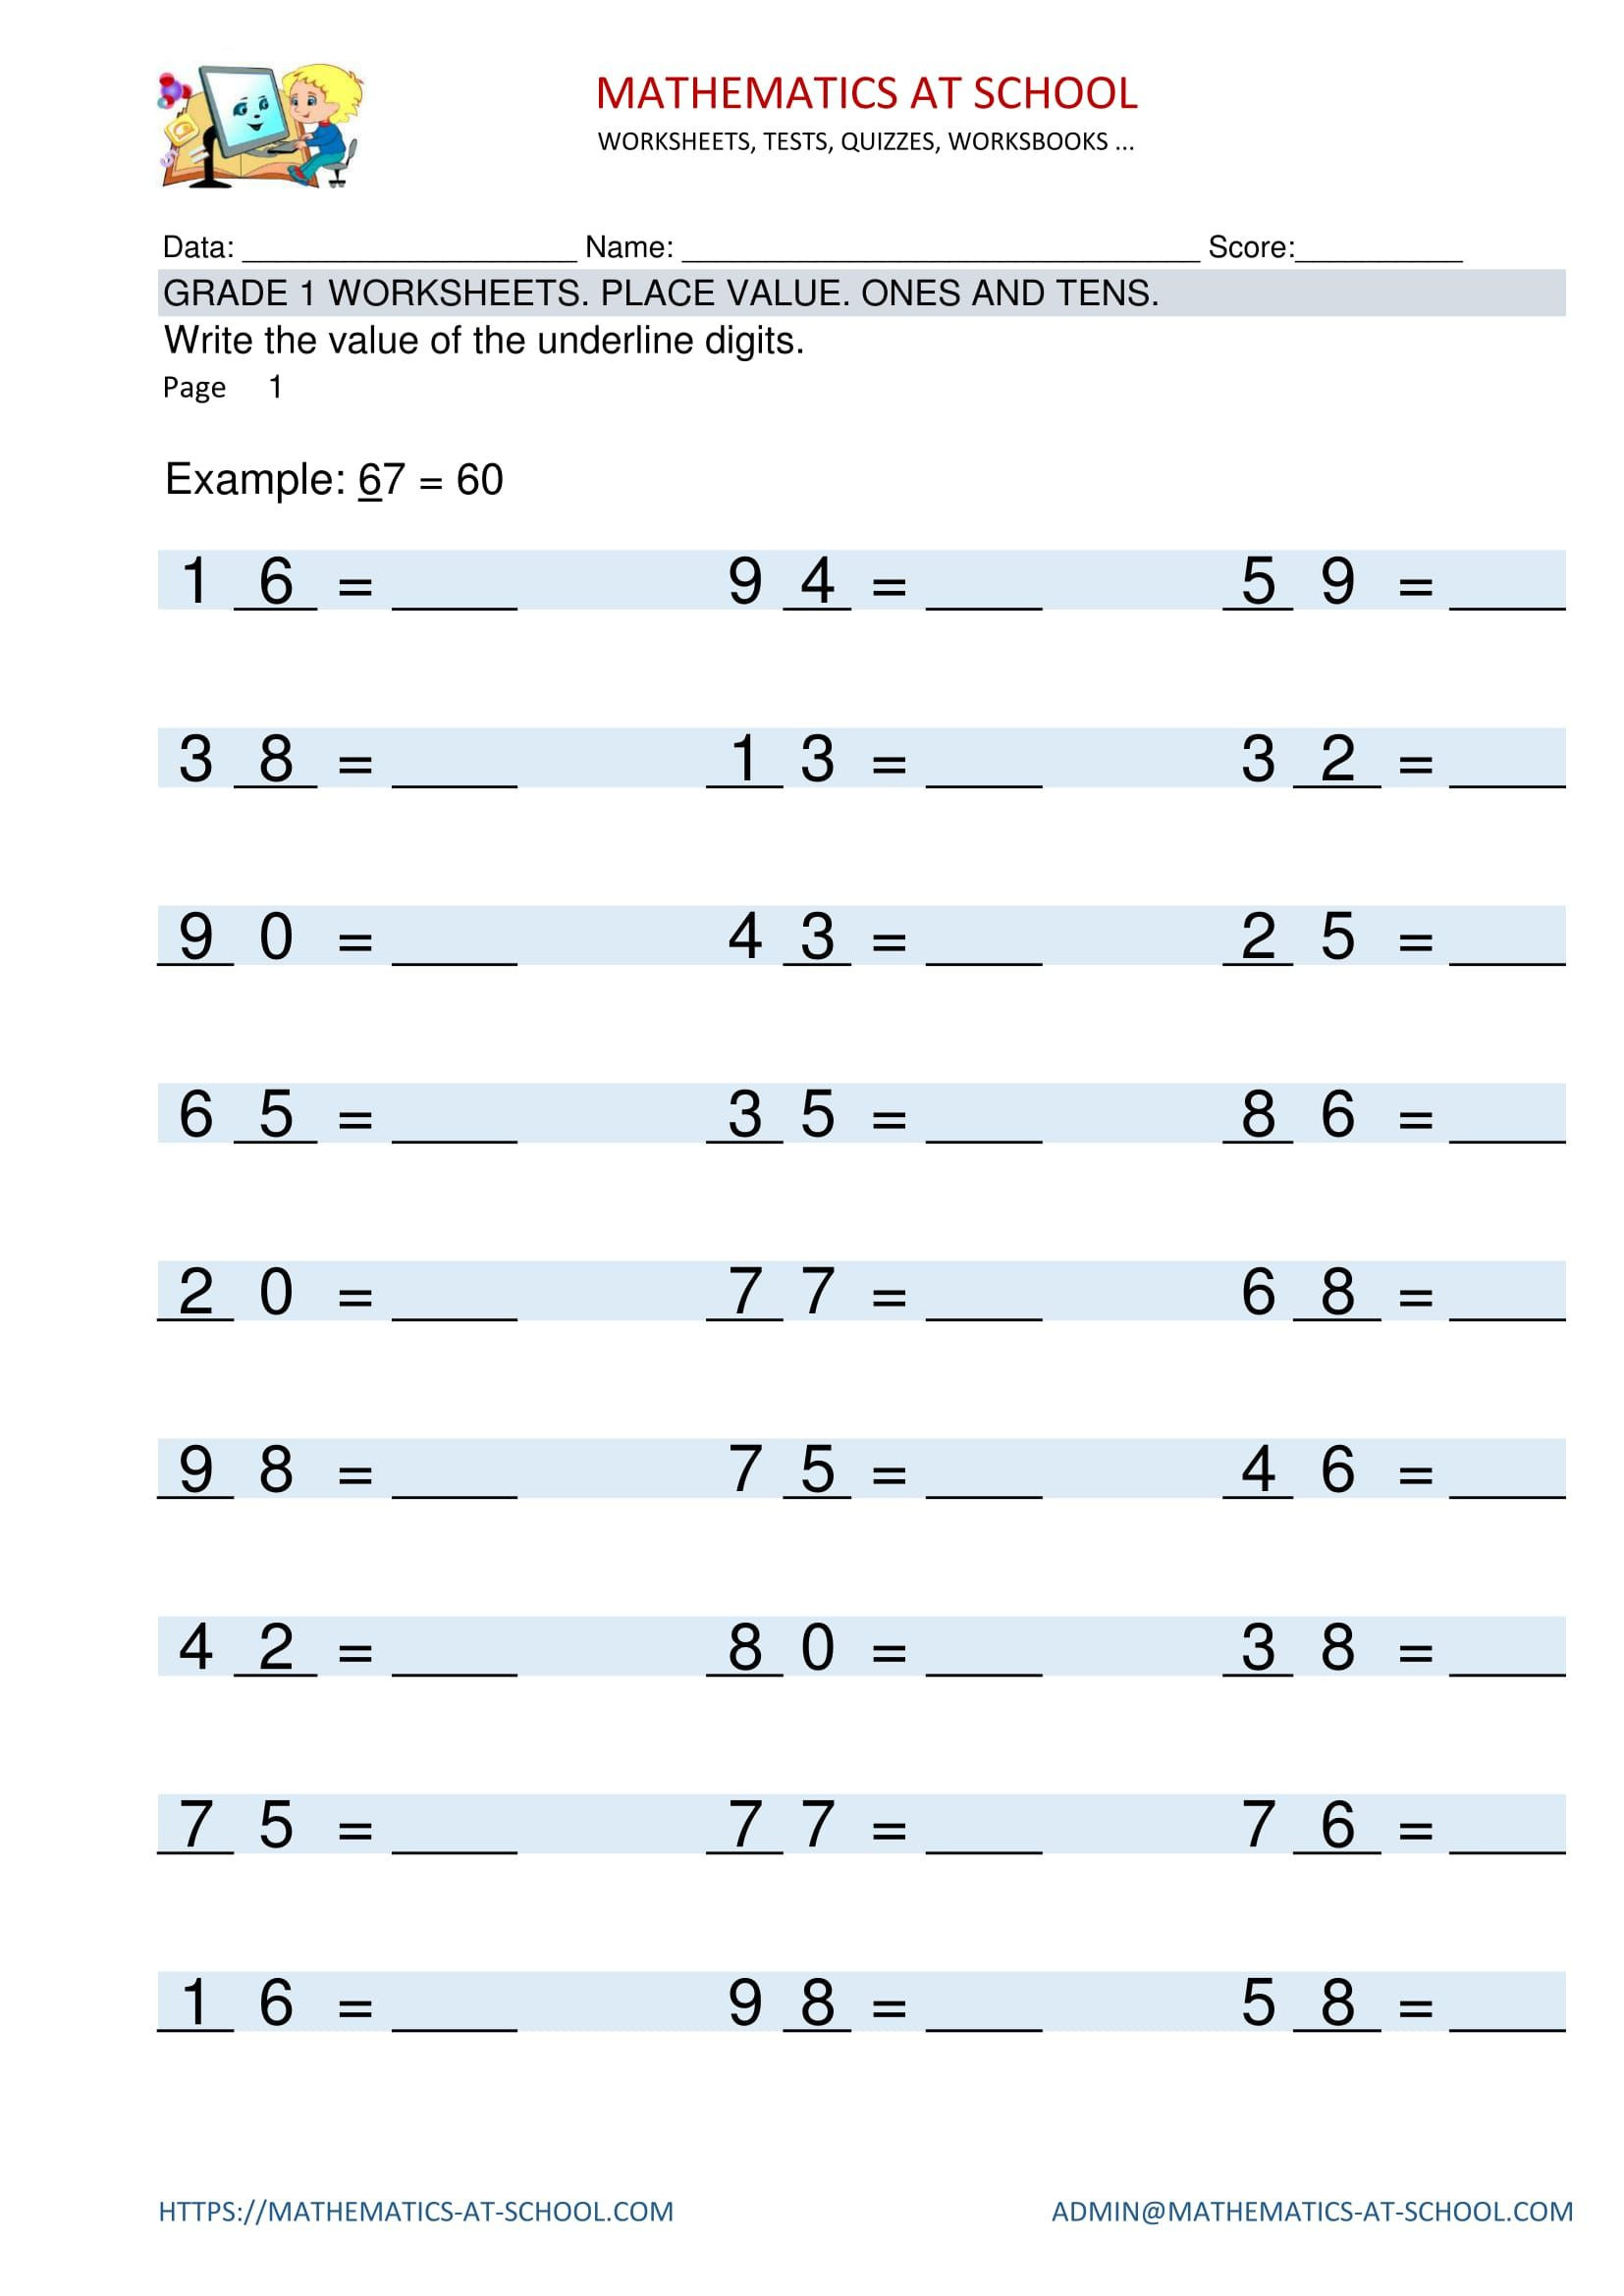 Place Value Worksheets Grade 5 Grade Worksheets Place Value Identifying Digits Free